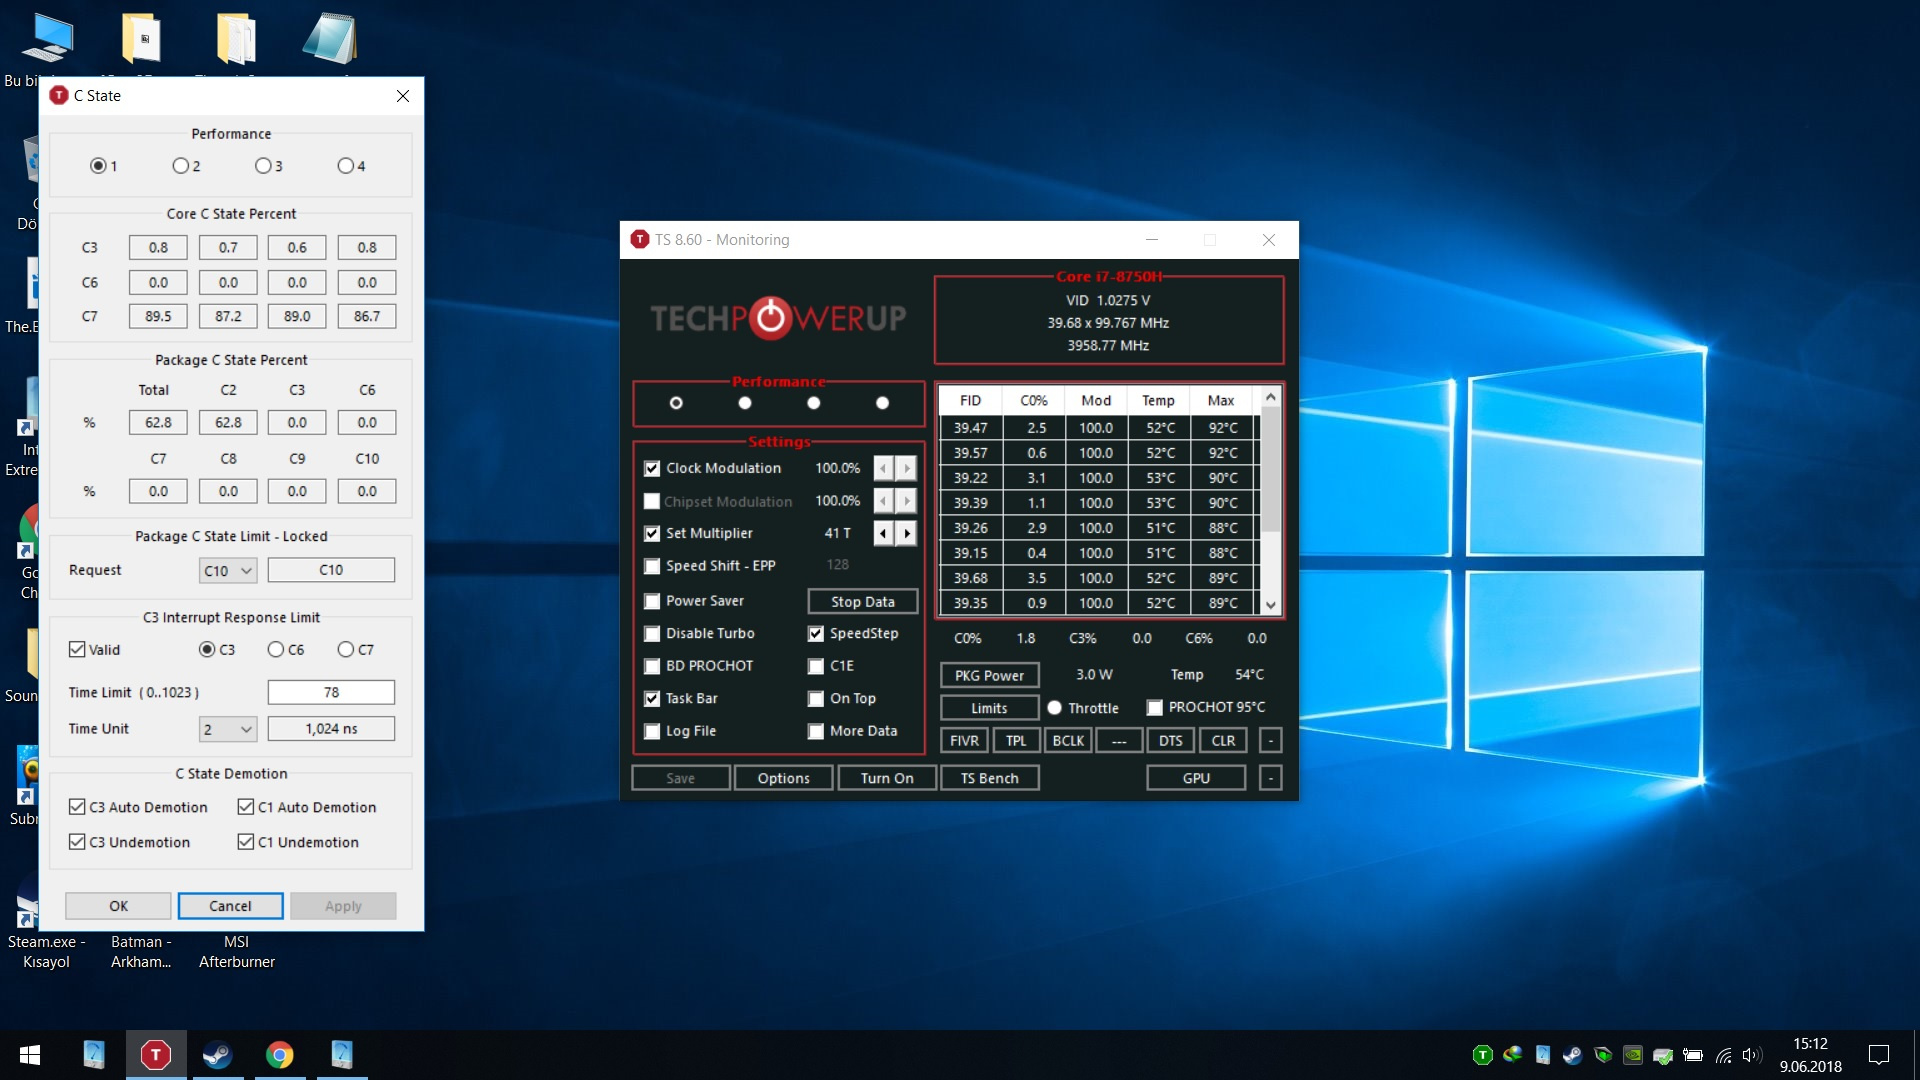 i7 8750h - Power Limit Throttling - Low TDP Even though